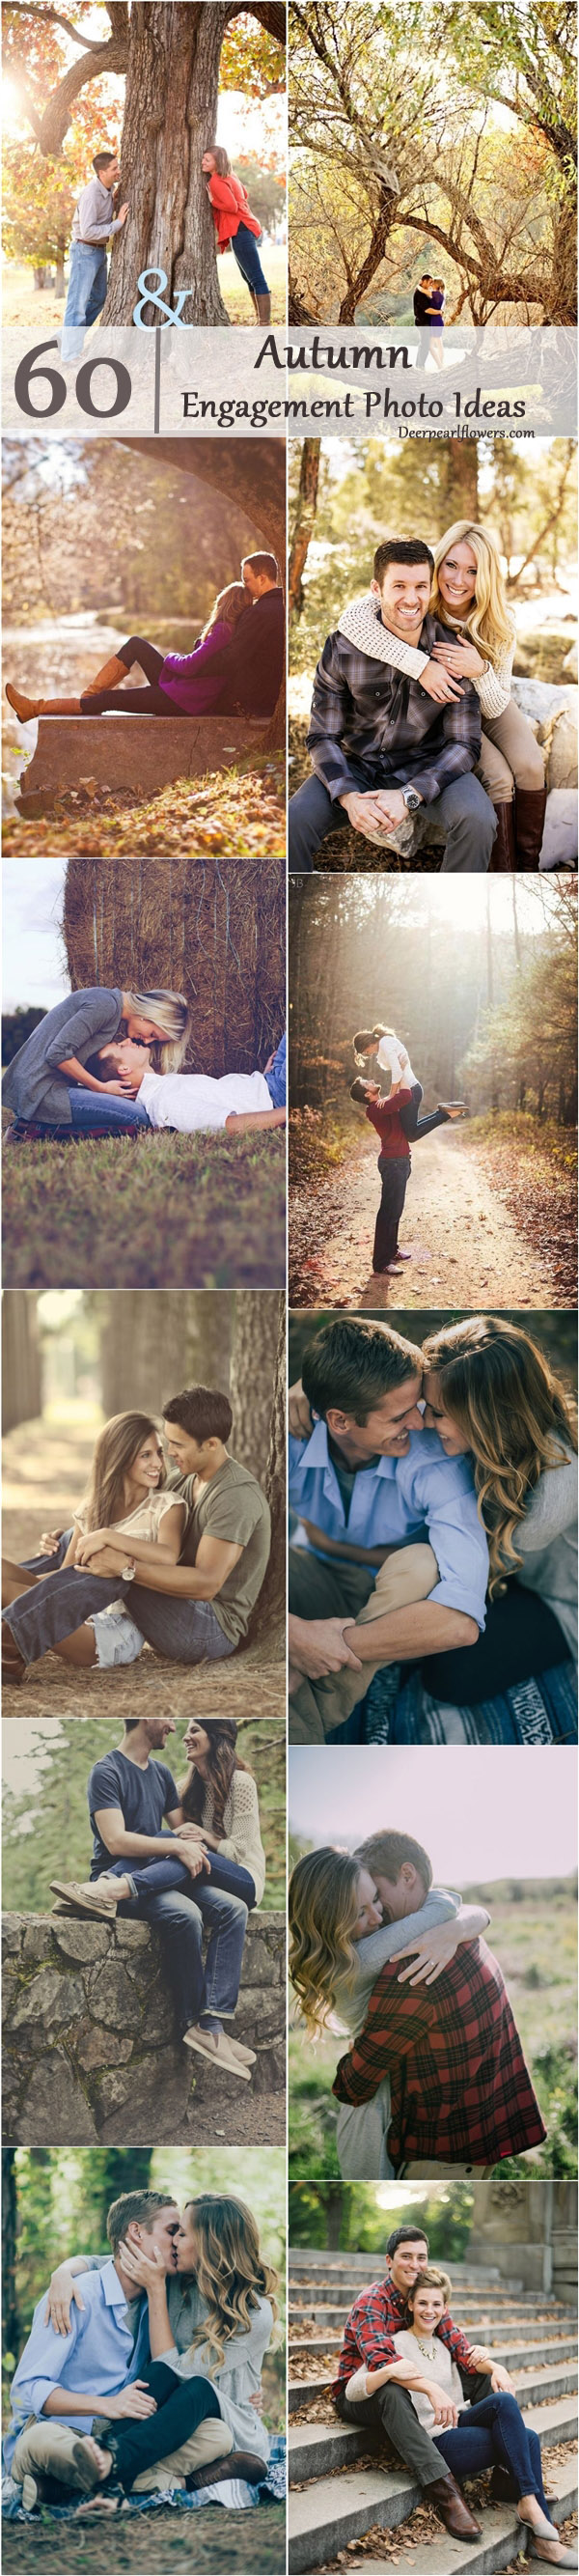 Fall Engagement Photo Shoot and Poses Ideas / www.deerpearlflow…